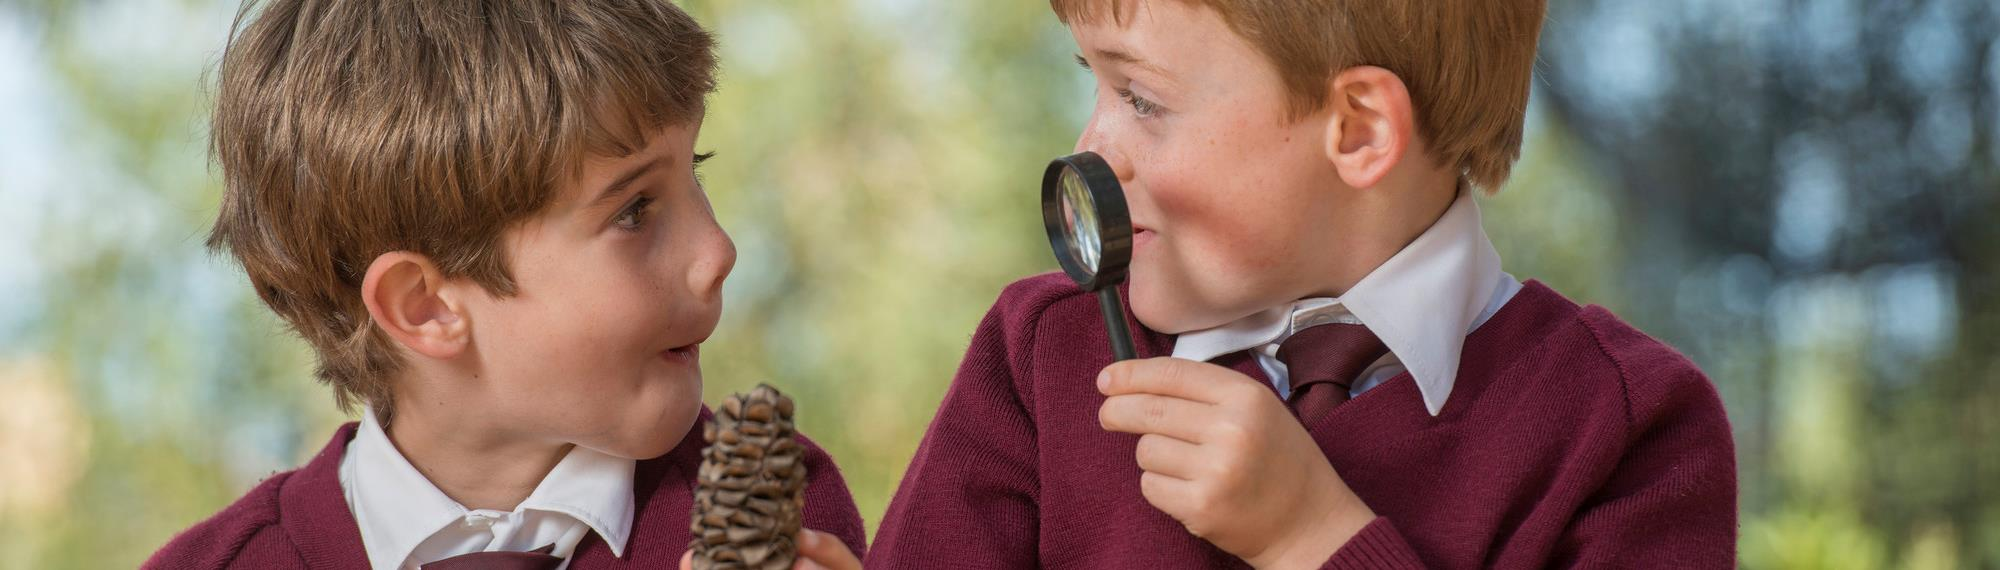 Two students using a magnifying glass to look closely at a banksia seed pod in Habitat Garden.